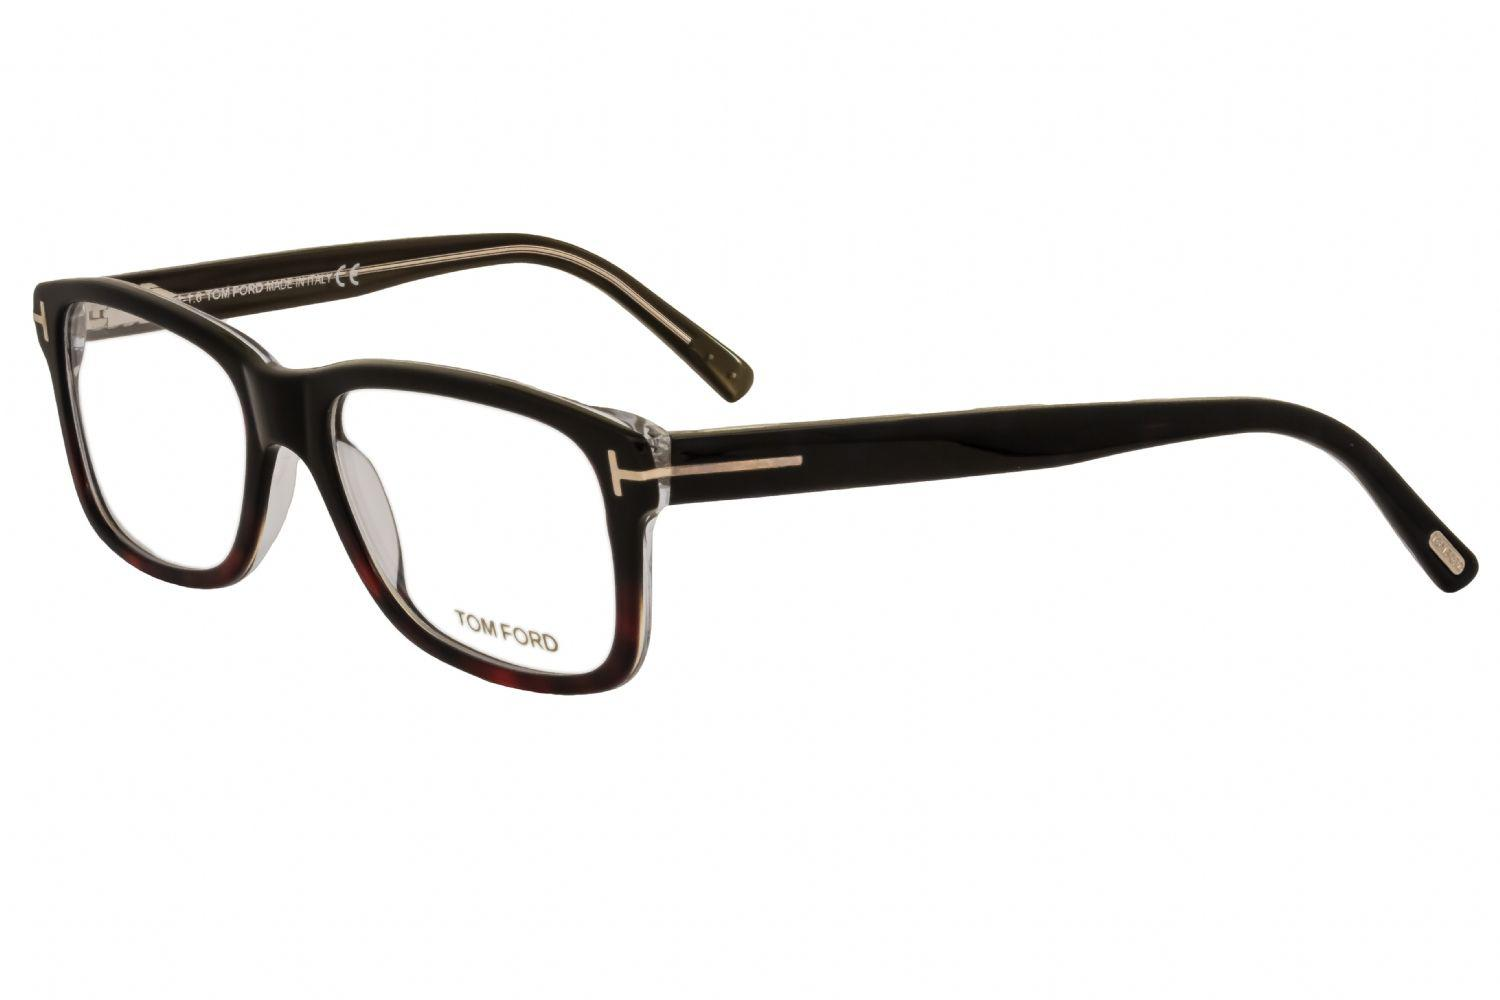 16a3c347e2 Tom Ford - Ft5163 Rectangular Unisex Eyeglasses Black Gradient Havana   Clear  Lenses - Lyst. View fullscreen